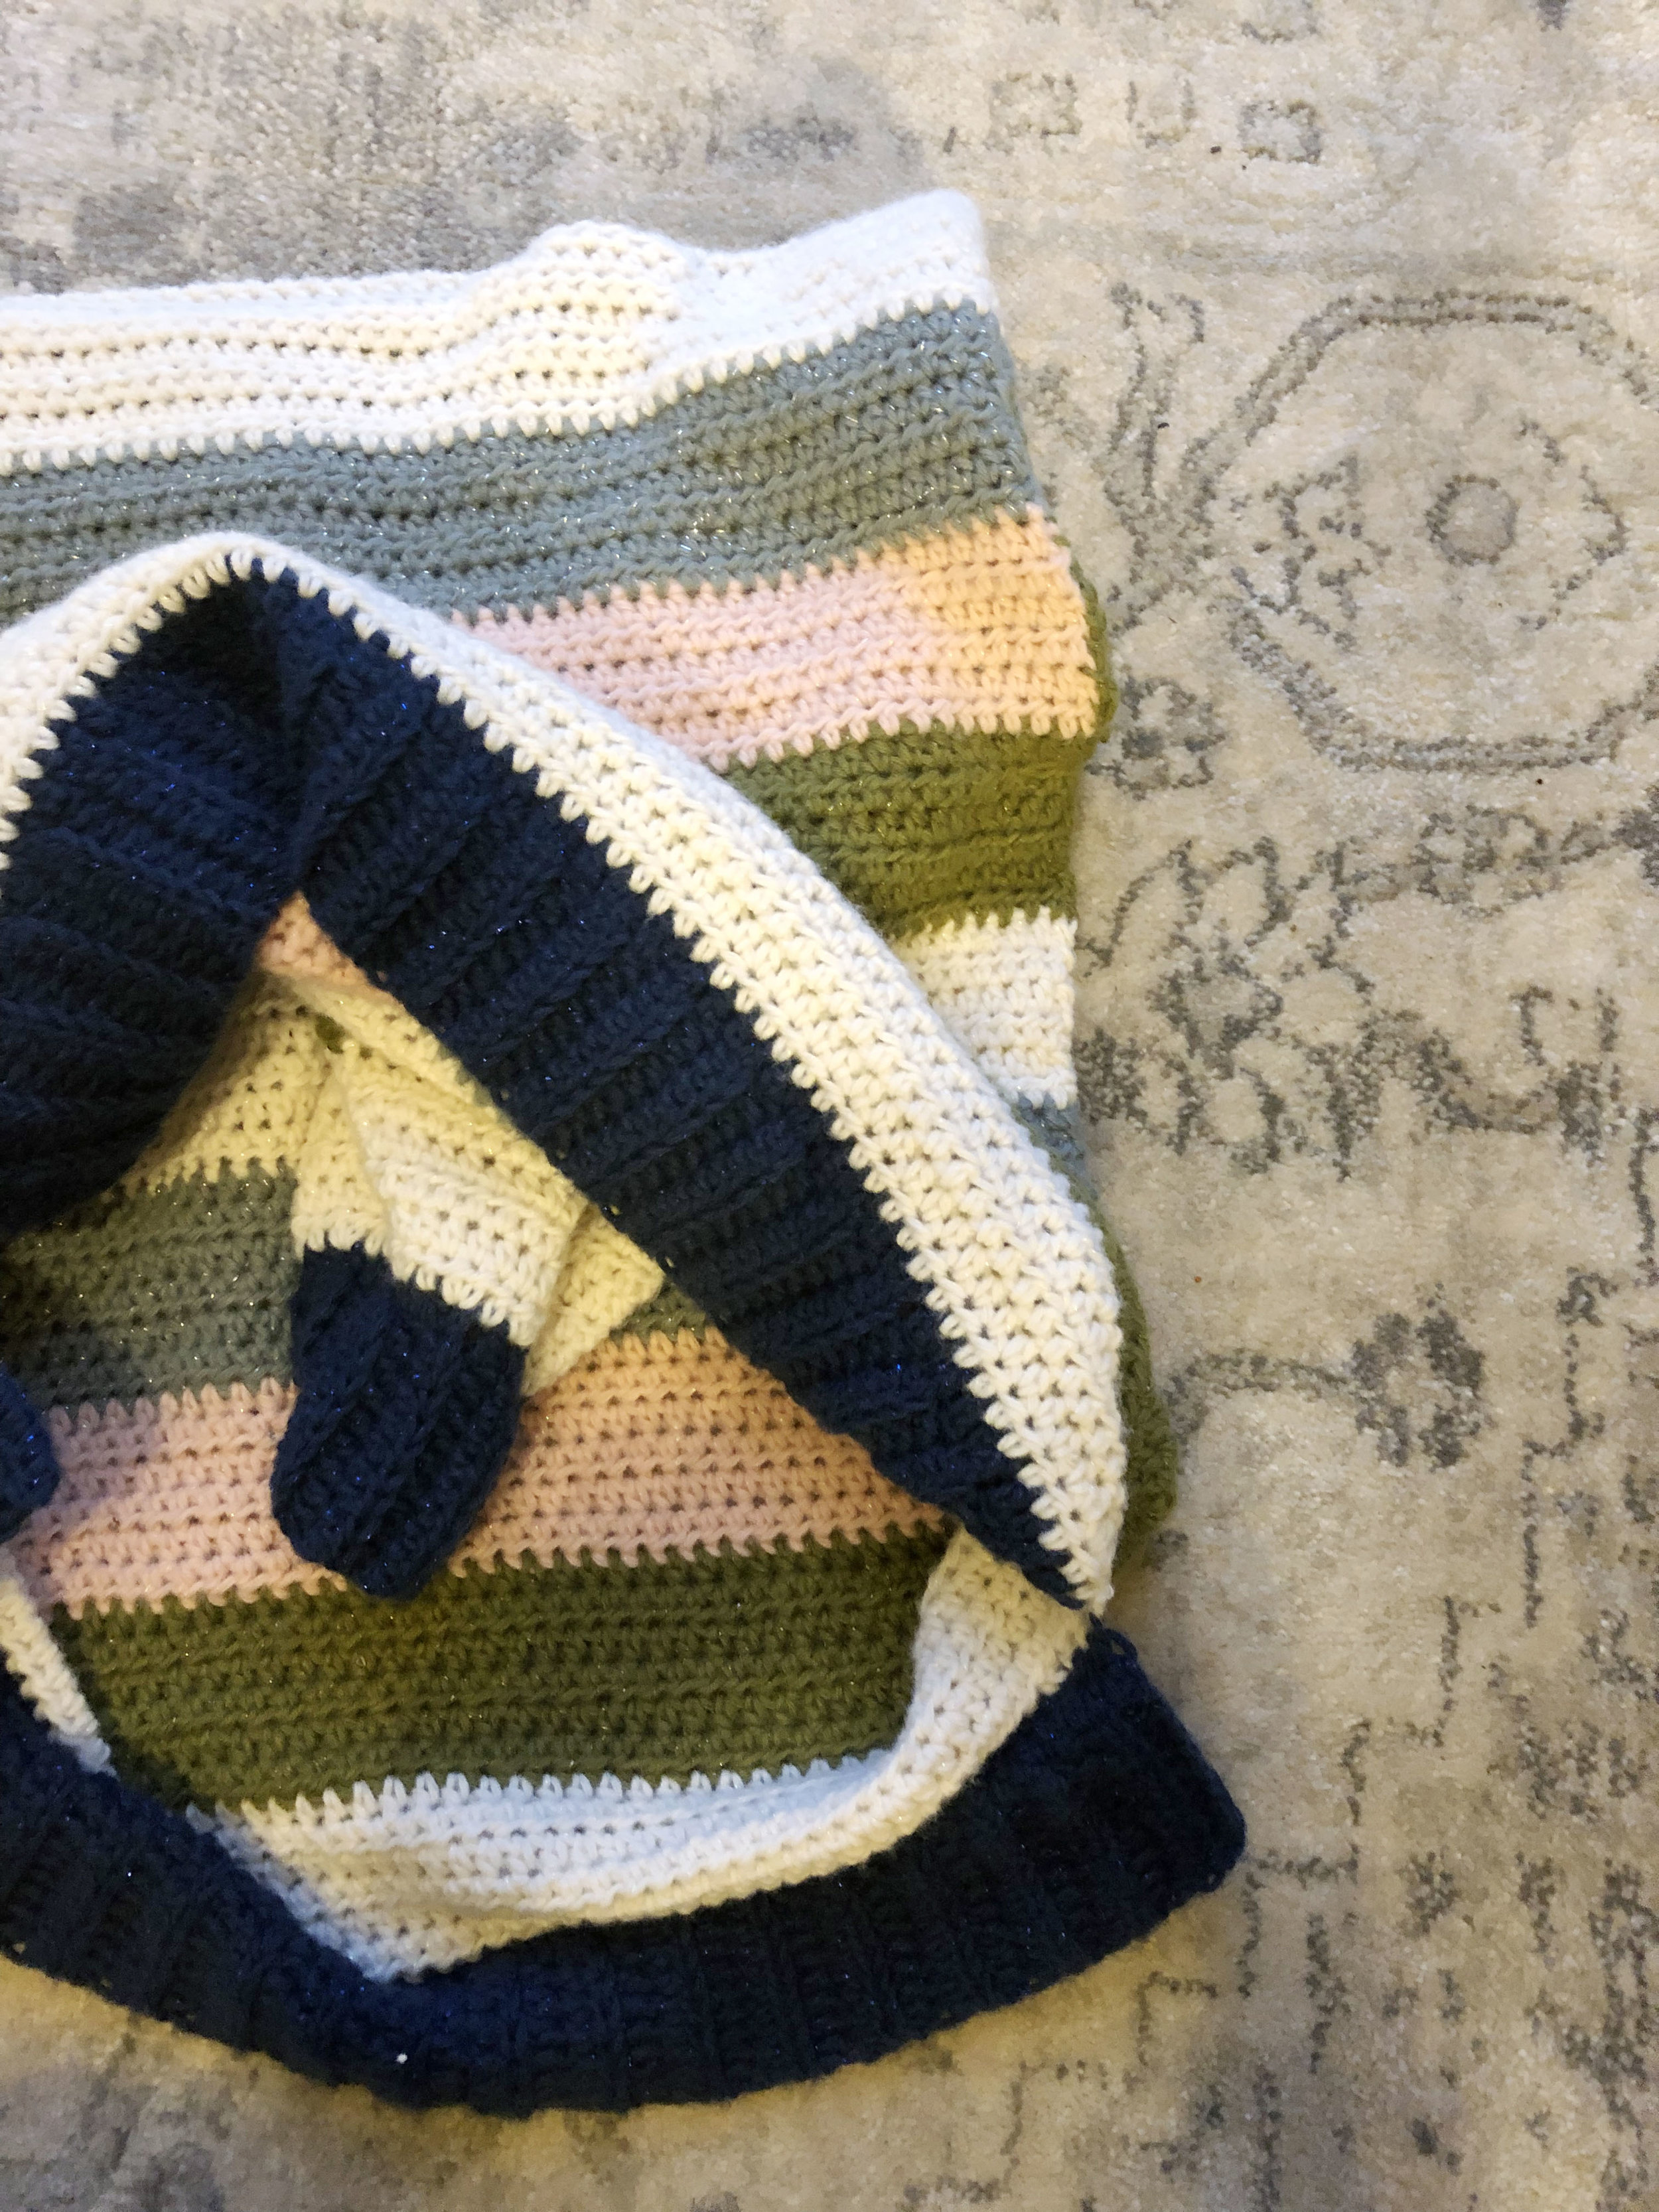 Free Crochet Pattern - Retro Stripes Sweater — Megmade with Love